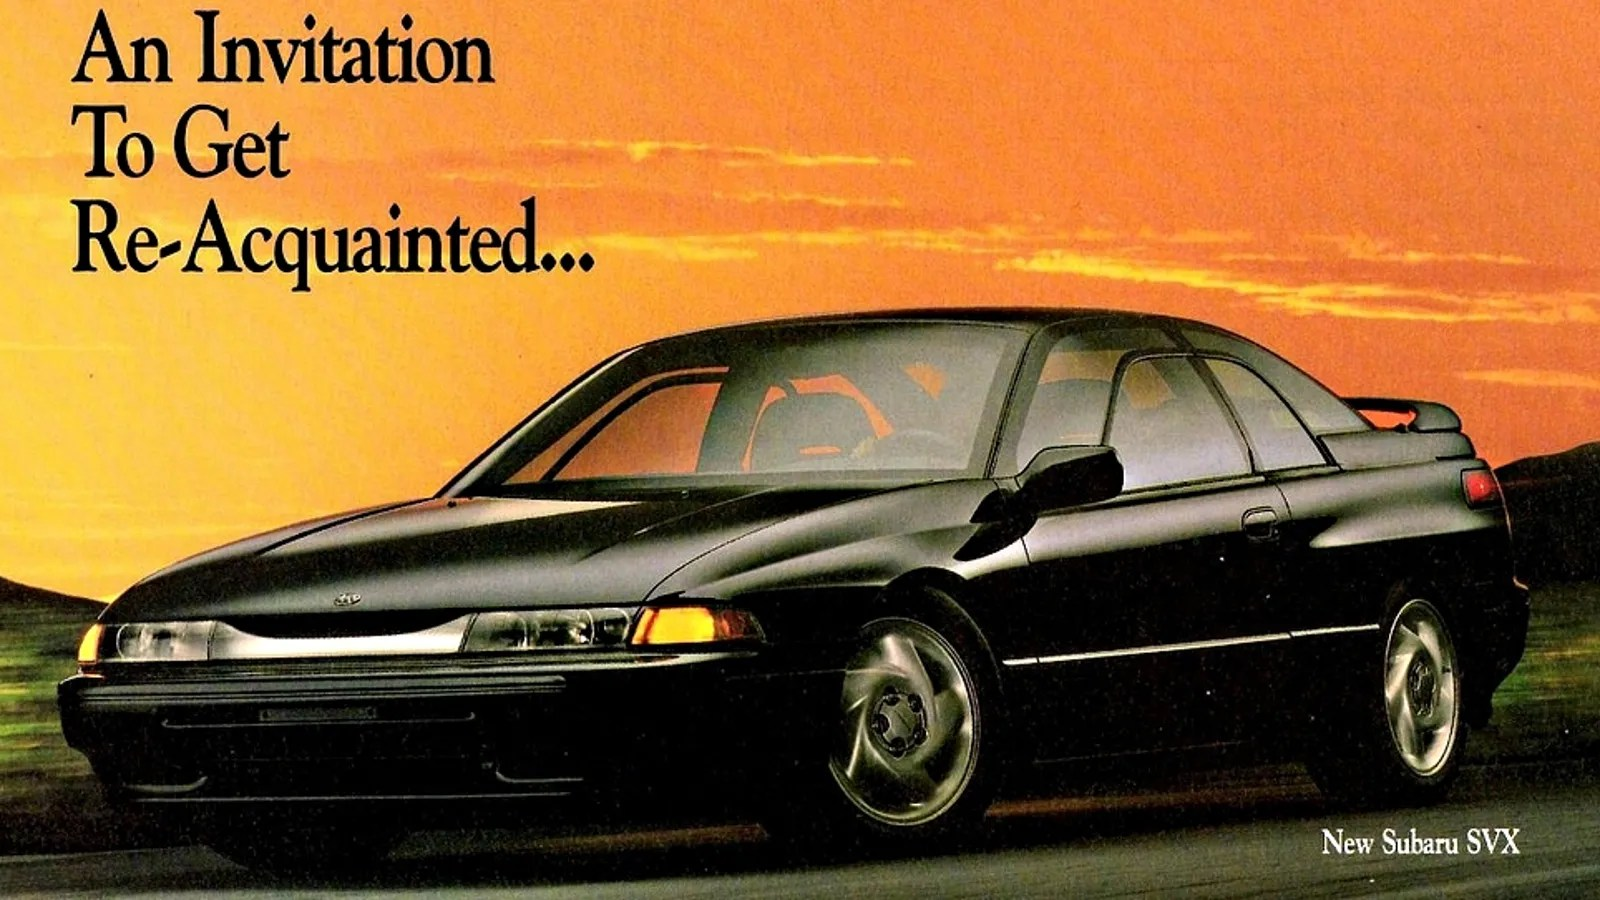 How To Make The Subaru Svx The Car It Deserves To Be